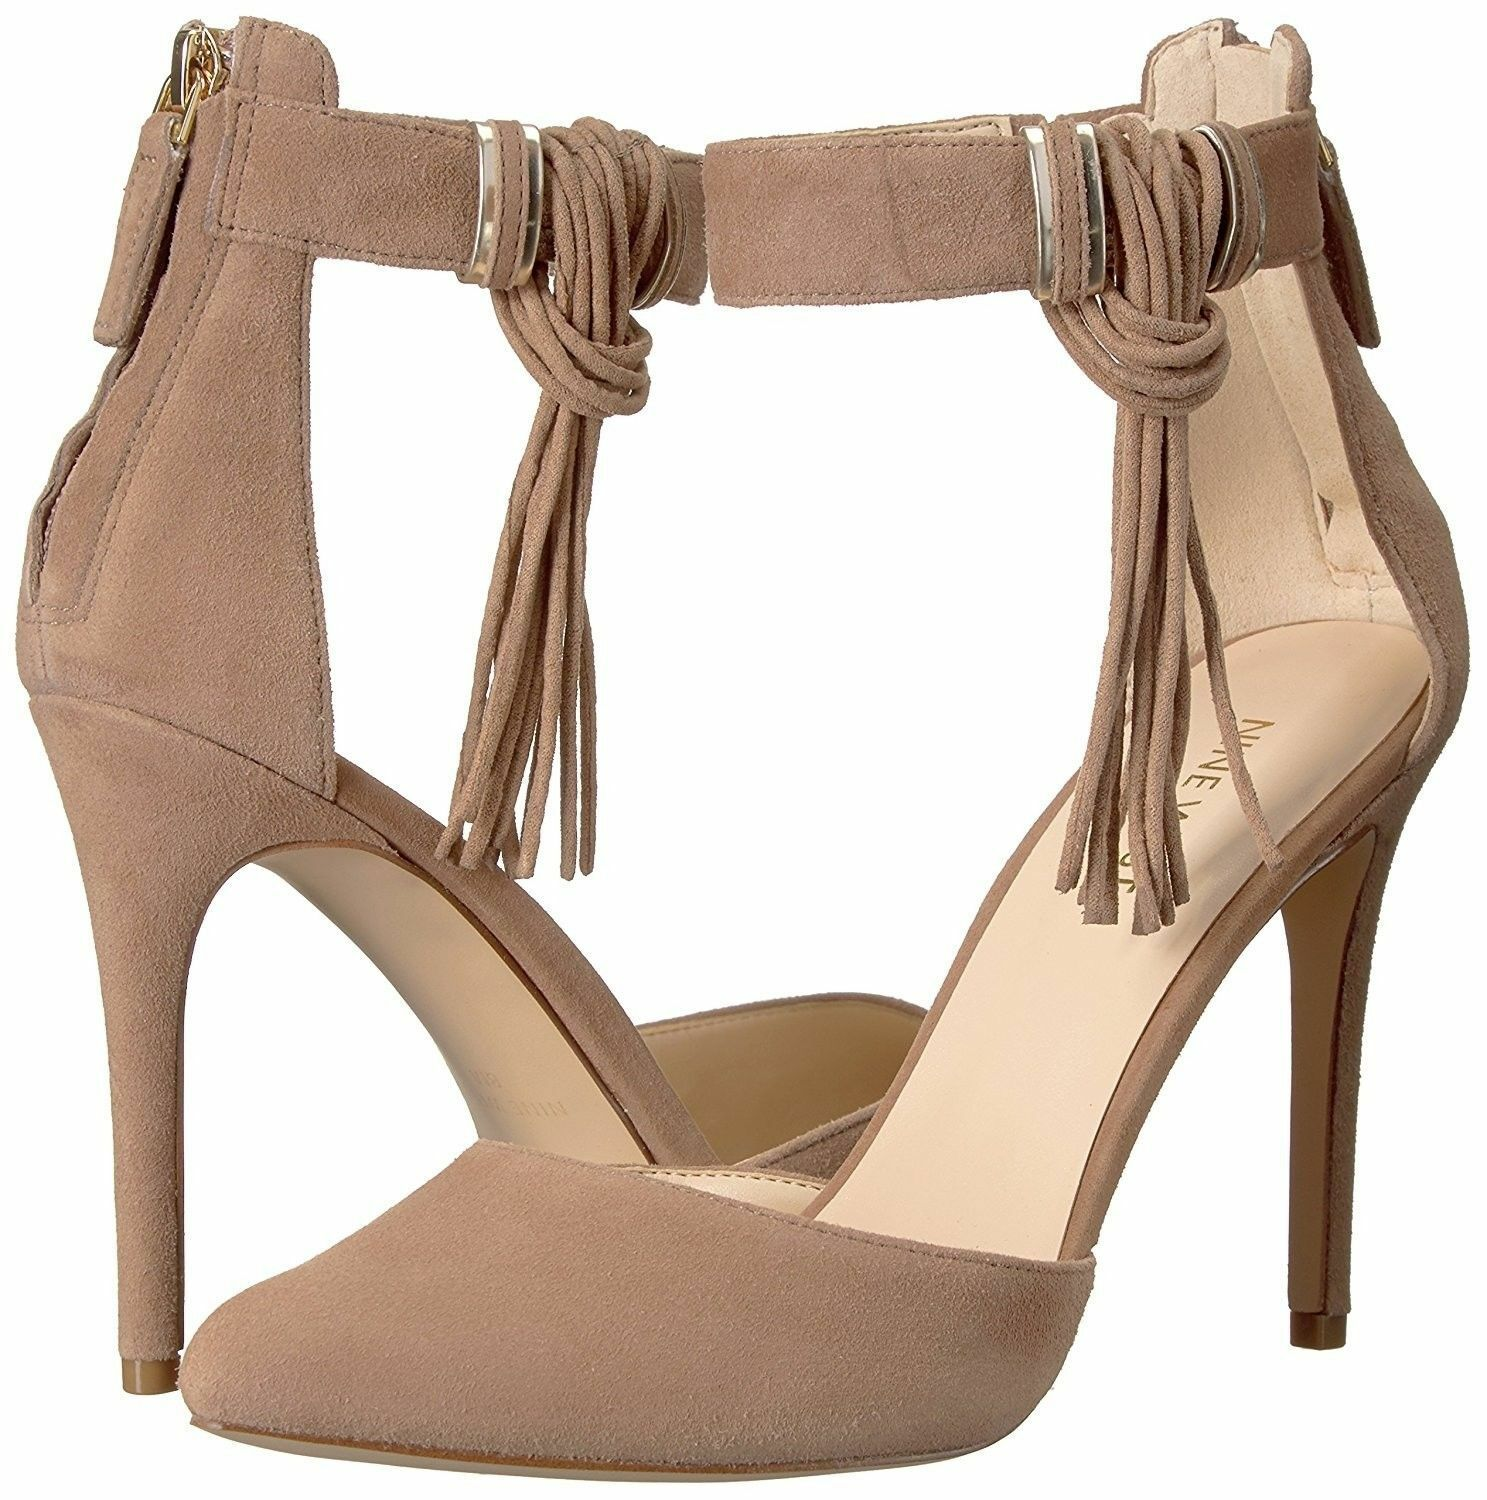 Nine Everafter West Everafter Nine 7 Natural Beige Nude Suede Leather Party Pumps Stilettos NEW 3e68c9